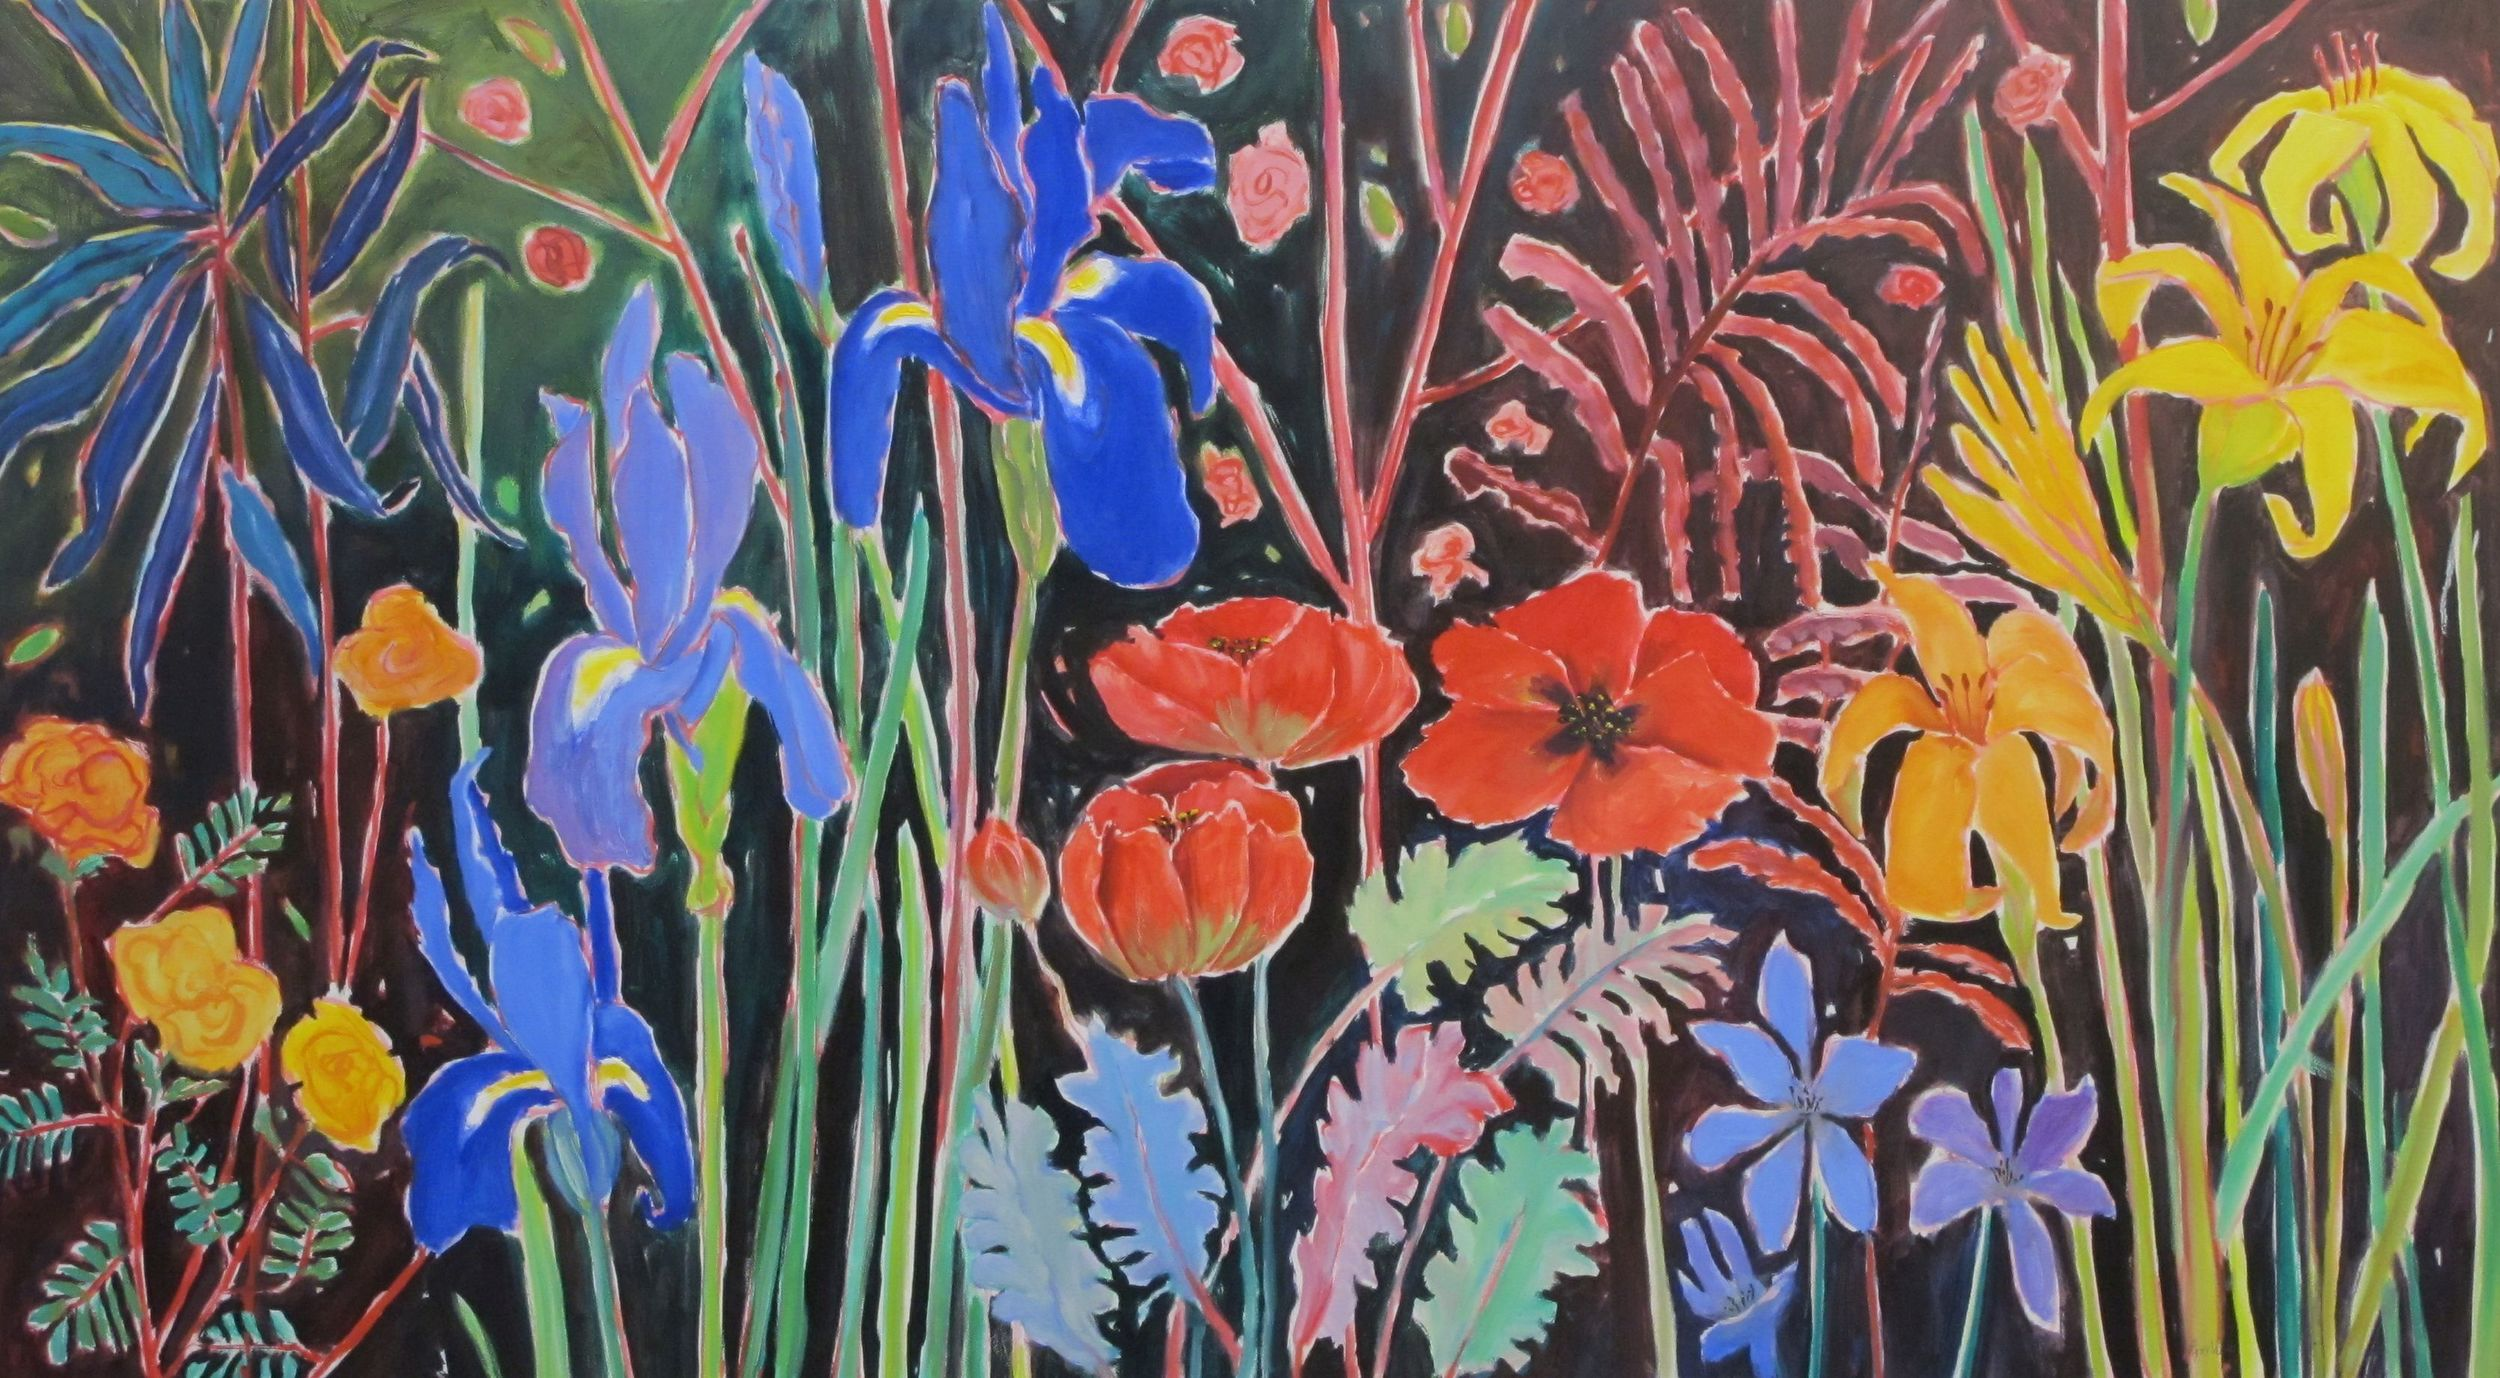 S Neighbours Garden oil on canvas 30 x 54 inches.jpg